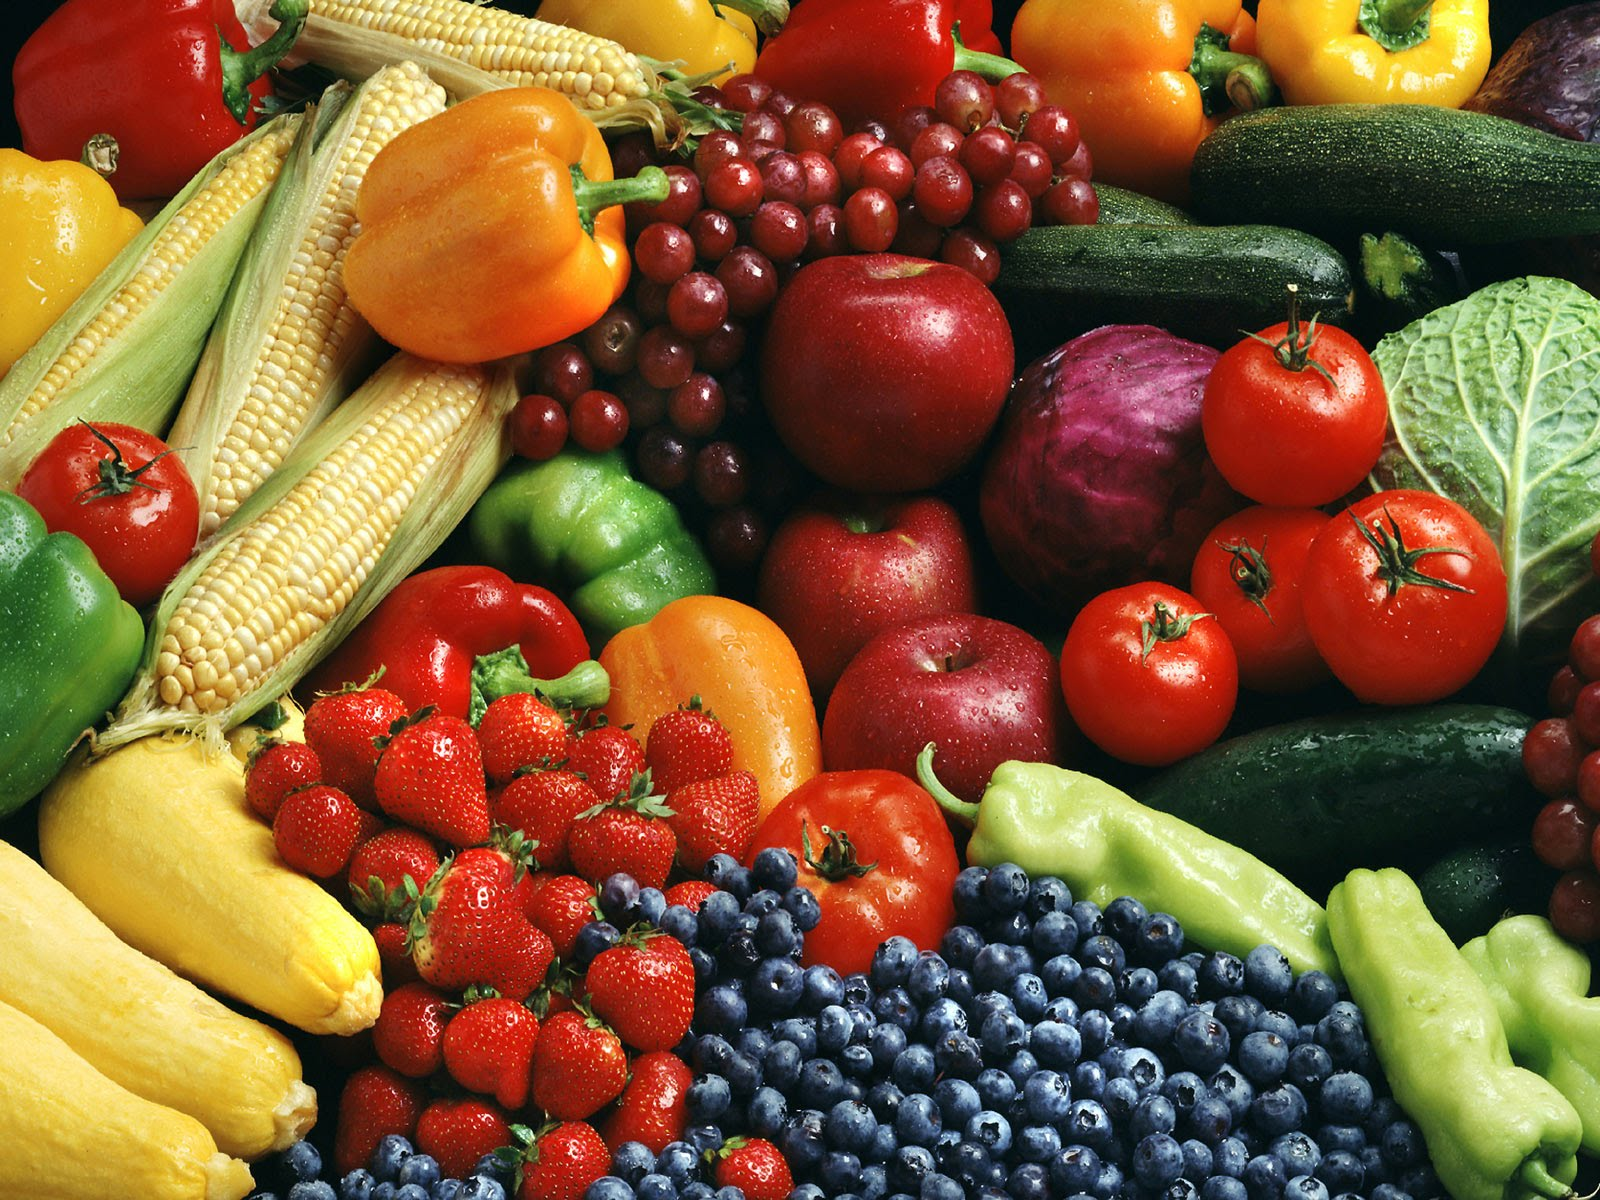 Top 10 Healthiest Foods To Eat Multi Genre Project